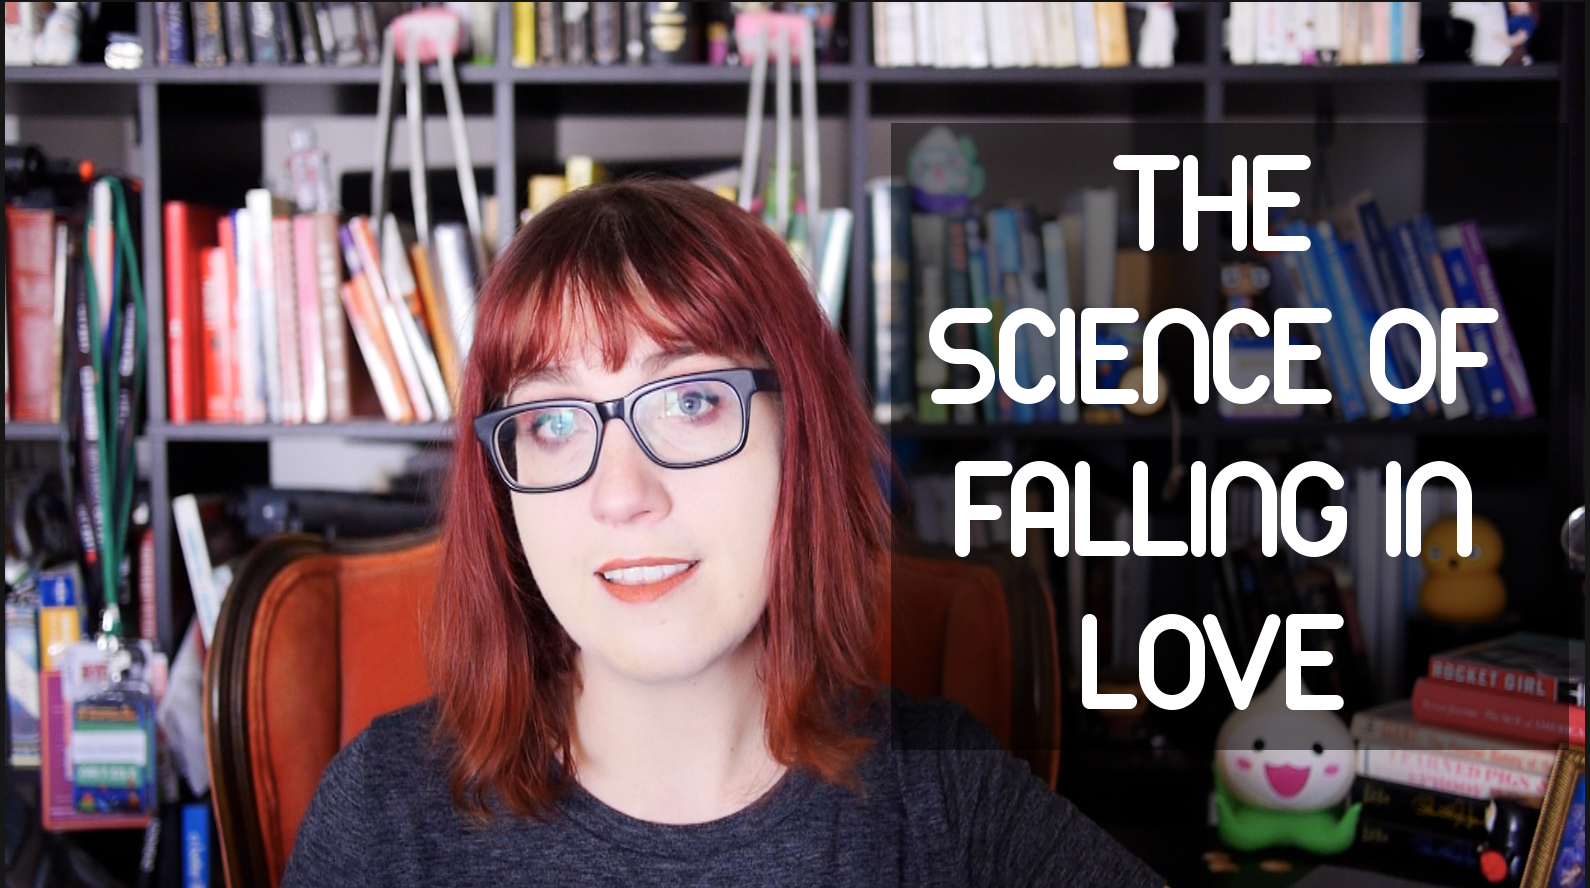 Falling in Love Makes You Healthier